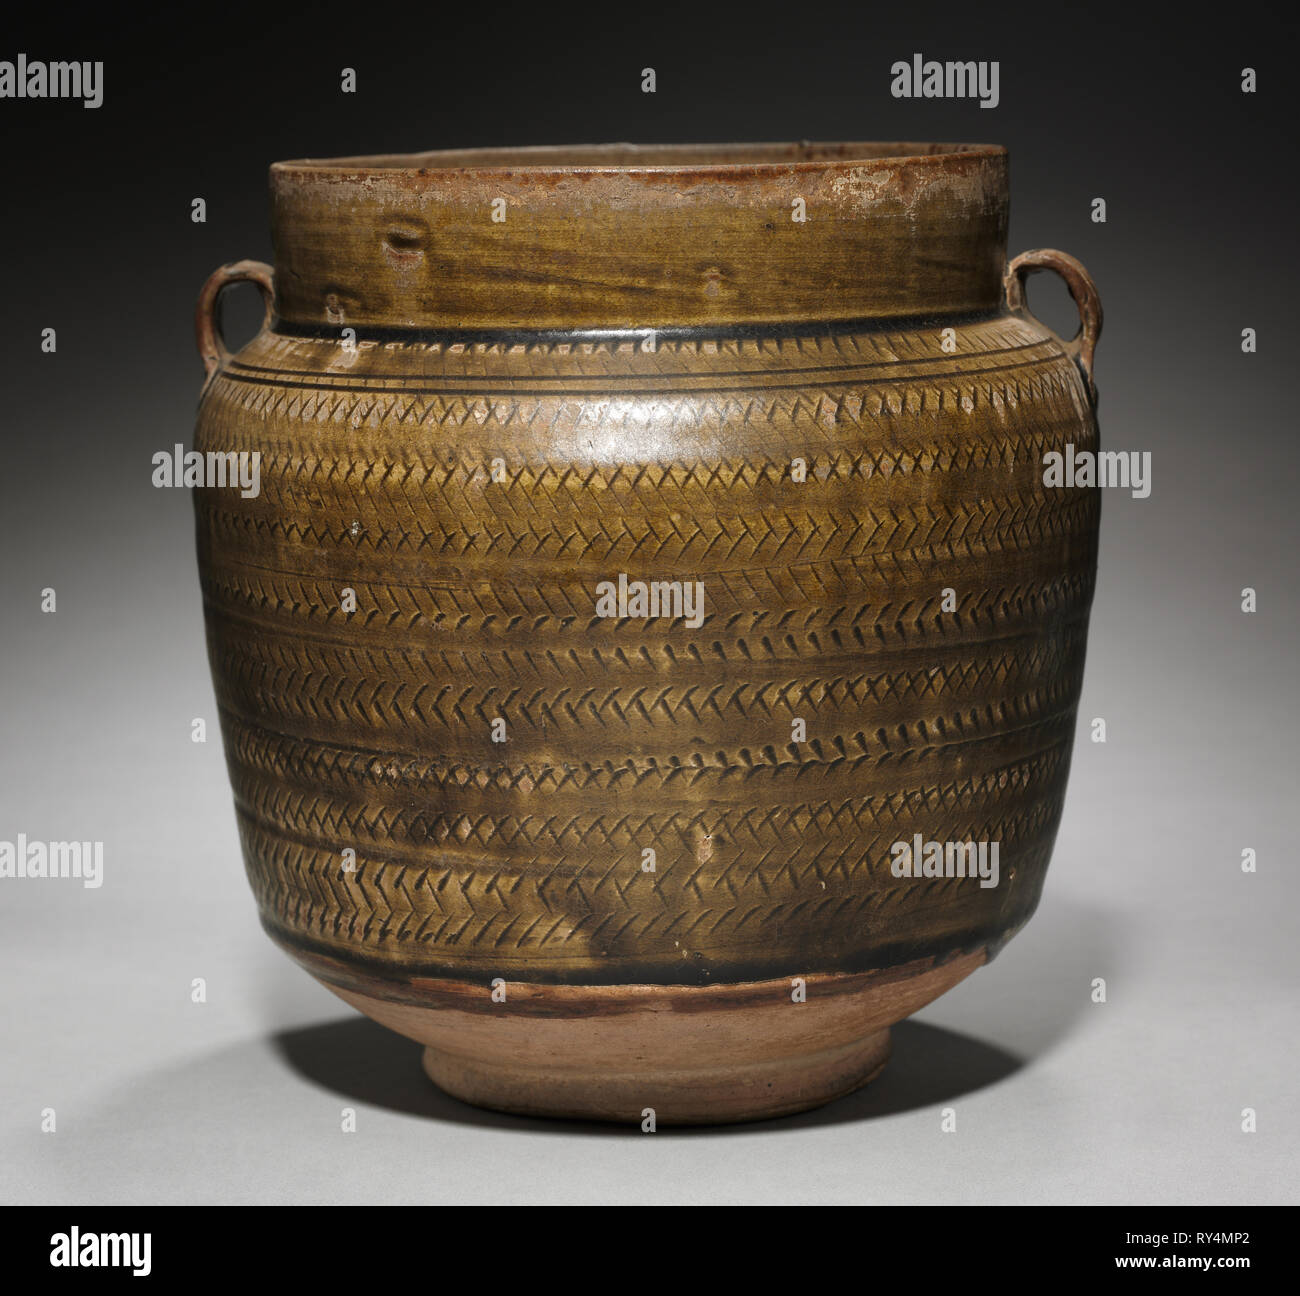 Jar:  Brown ware, 9th-10th Century. China, Northern, Tang dynasty (618-907) - Five dynasties (907-960). Glazed pinkish-buff stoneware; diameter: 25.9 cm (10 3/16 in.); overall: 27.3 cm (10 3/4 in - Stock Image